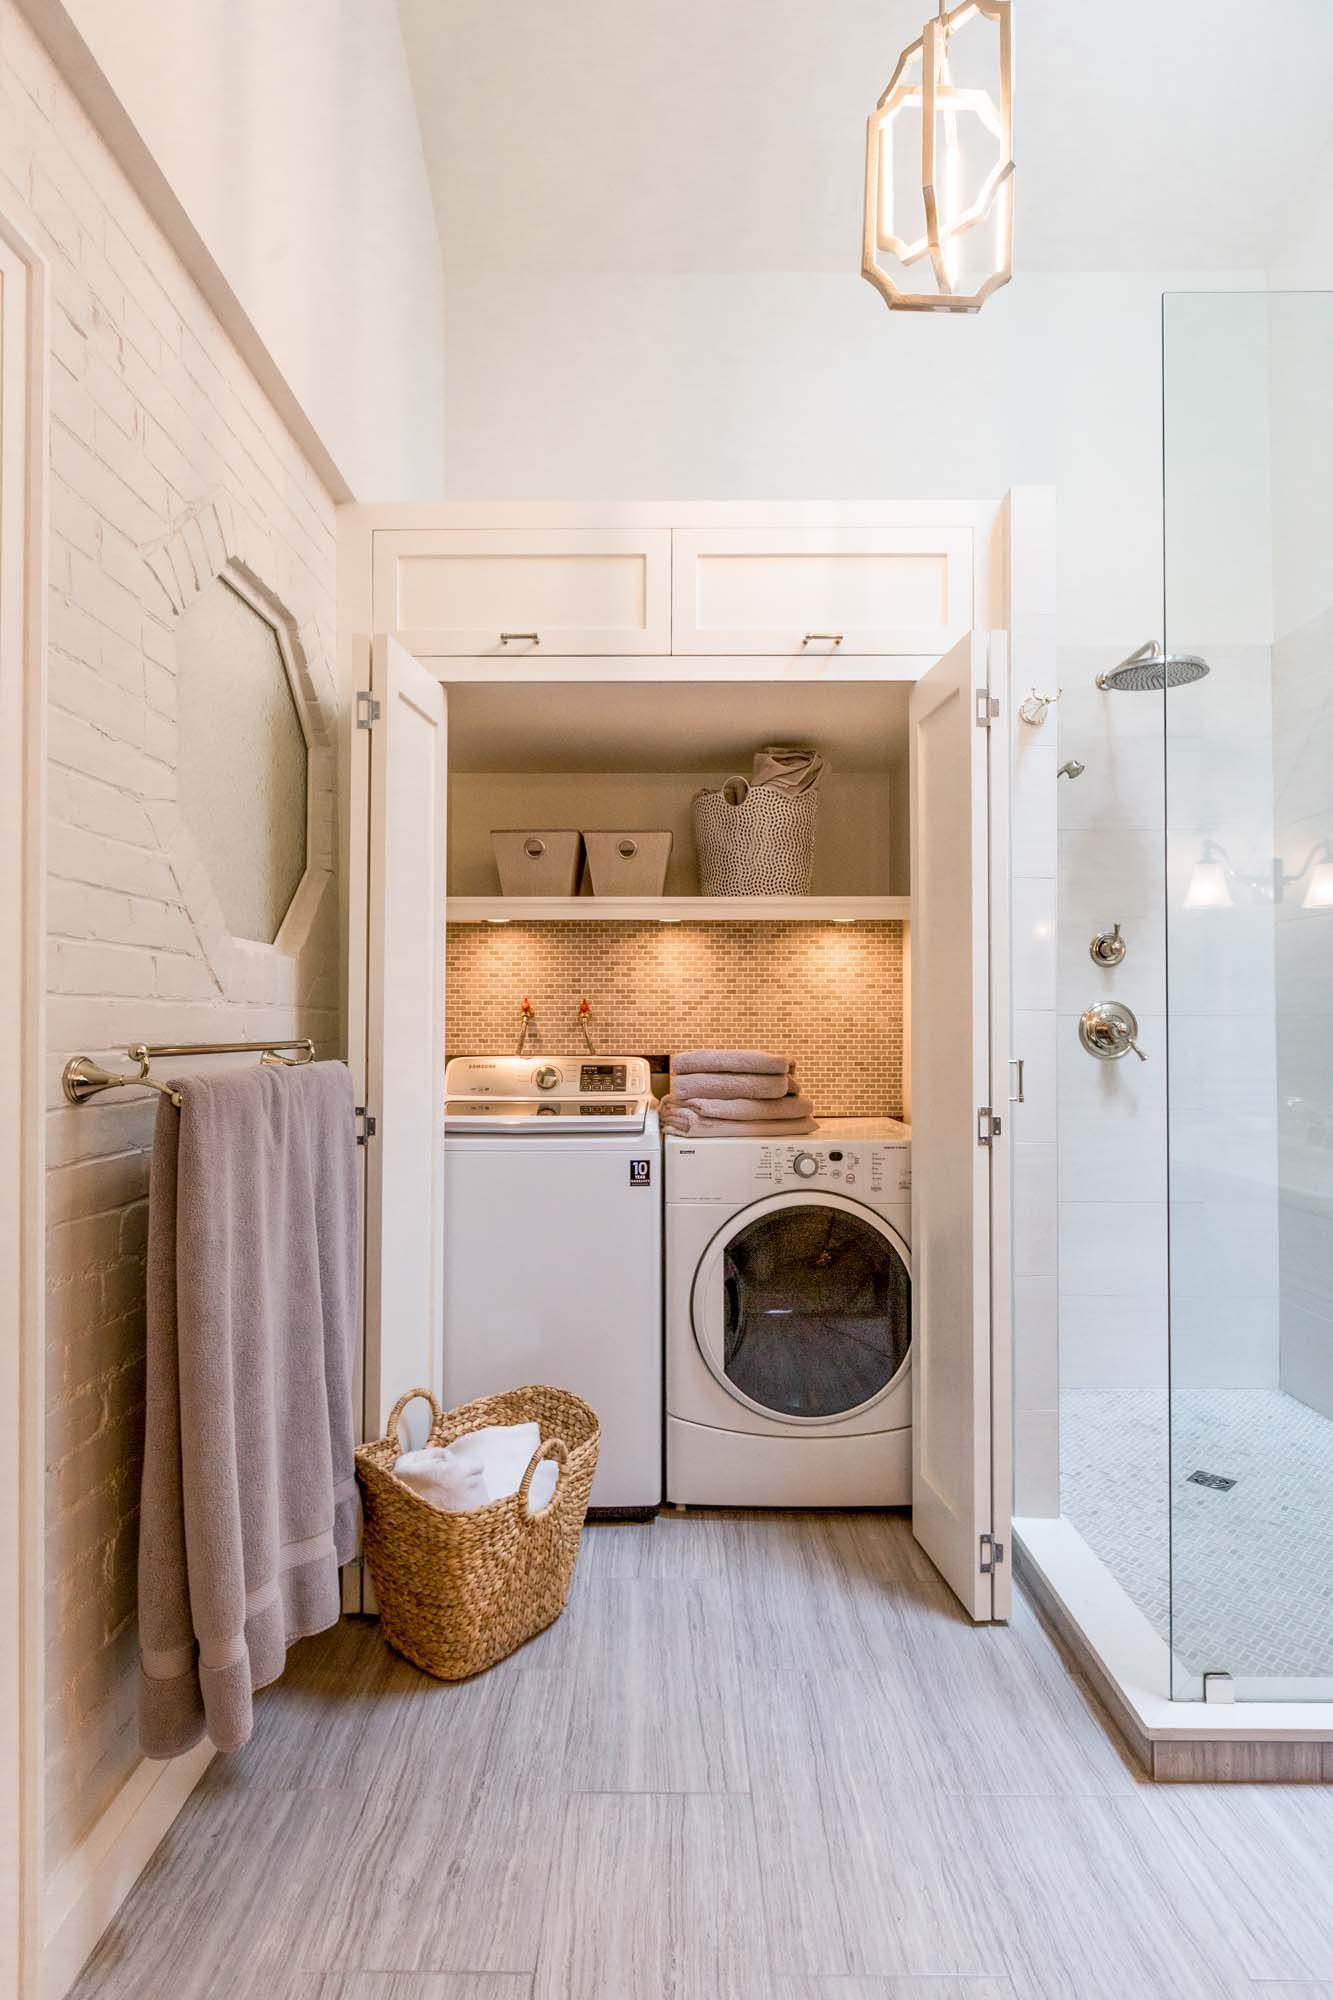 Bathroom Laundry Room Ideas As The Two In One Concept In 2020 Laundry Bathroom Combo Laundry Room Bathroom Laundry In Bathroom